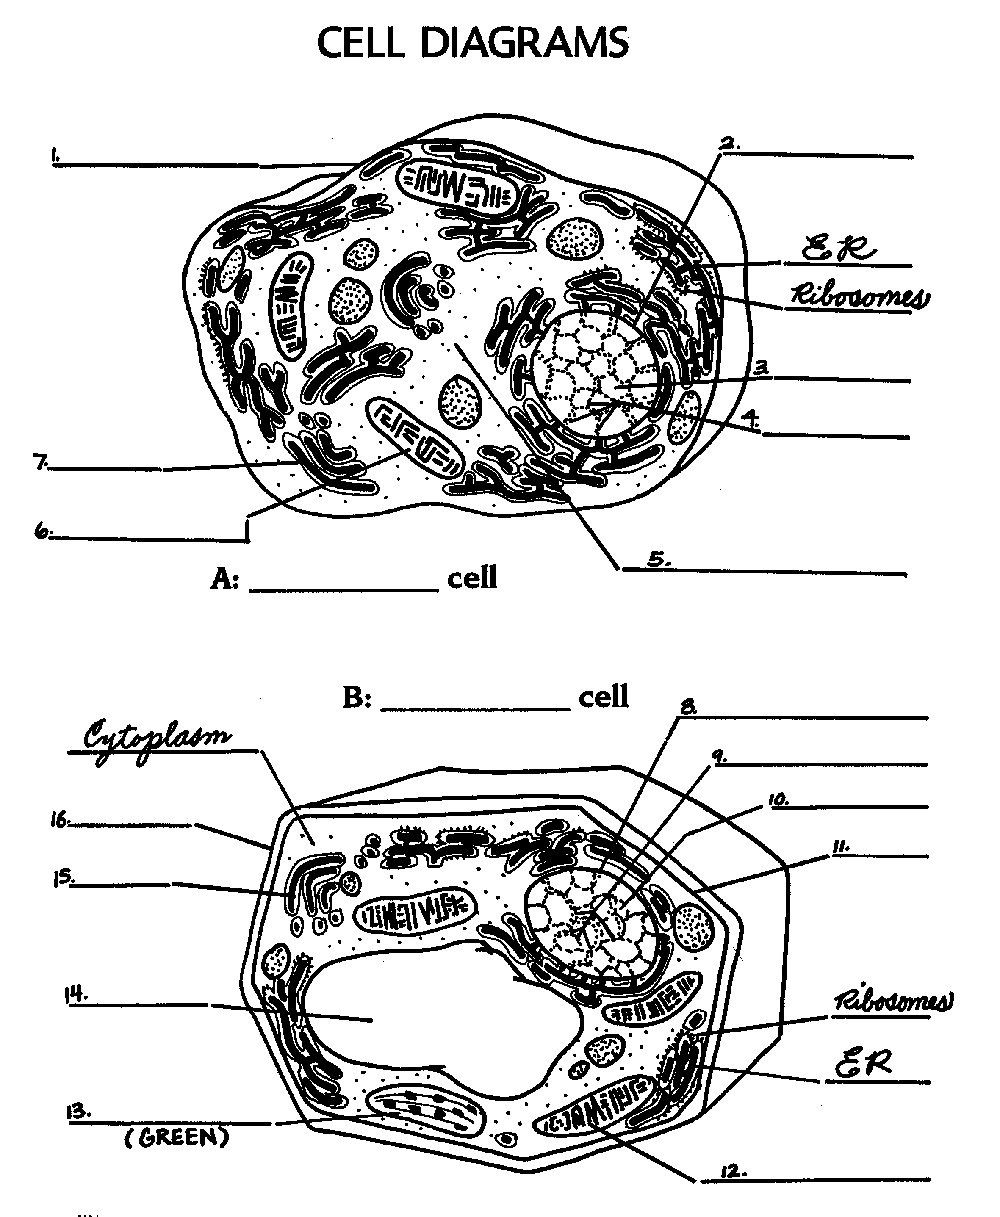 12 Best Images of Animal Cell Worksheet Answers - Labeled ...